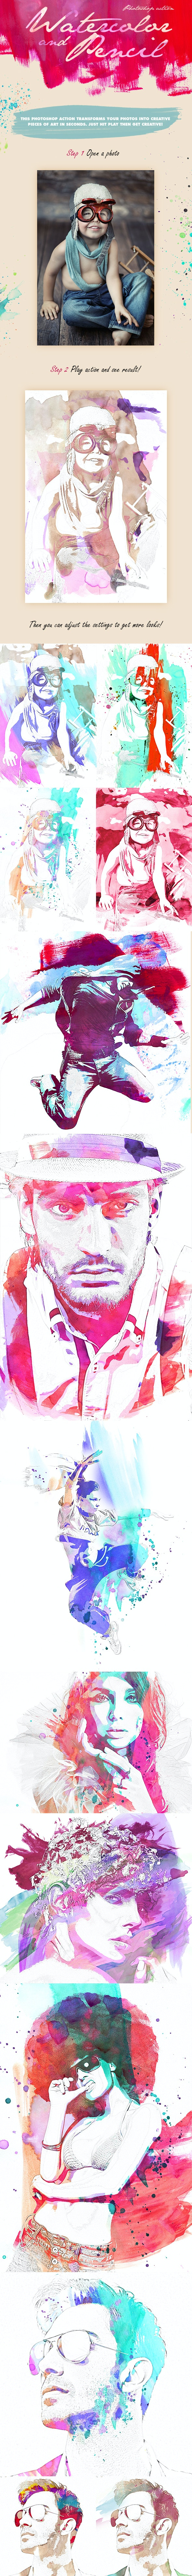 Watercolor & Pencil Photoshop Action - Photo Effects Actions